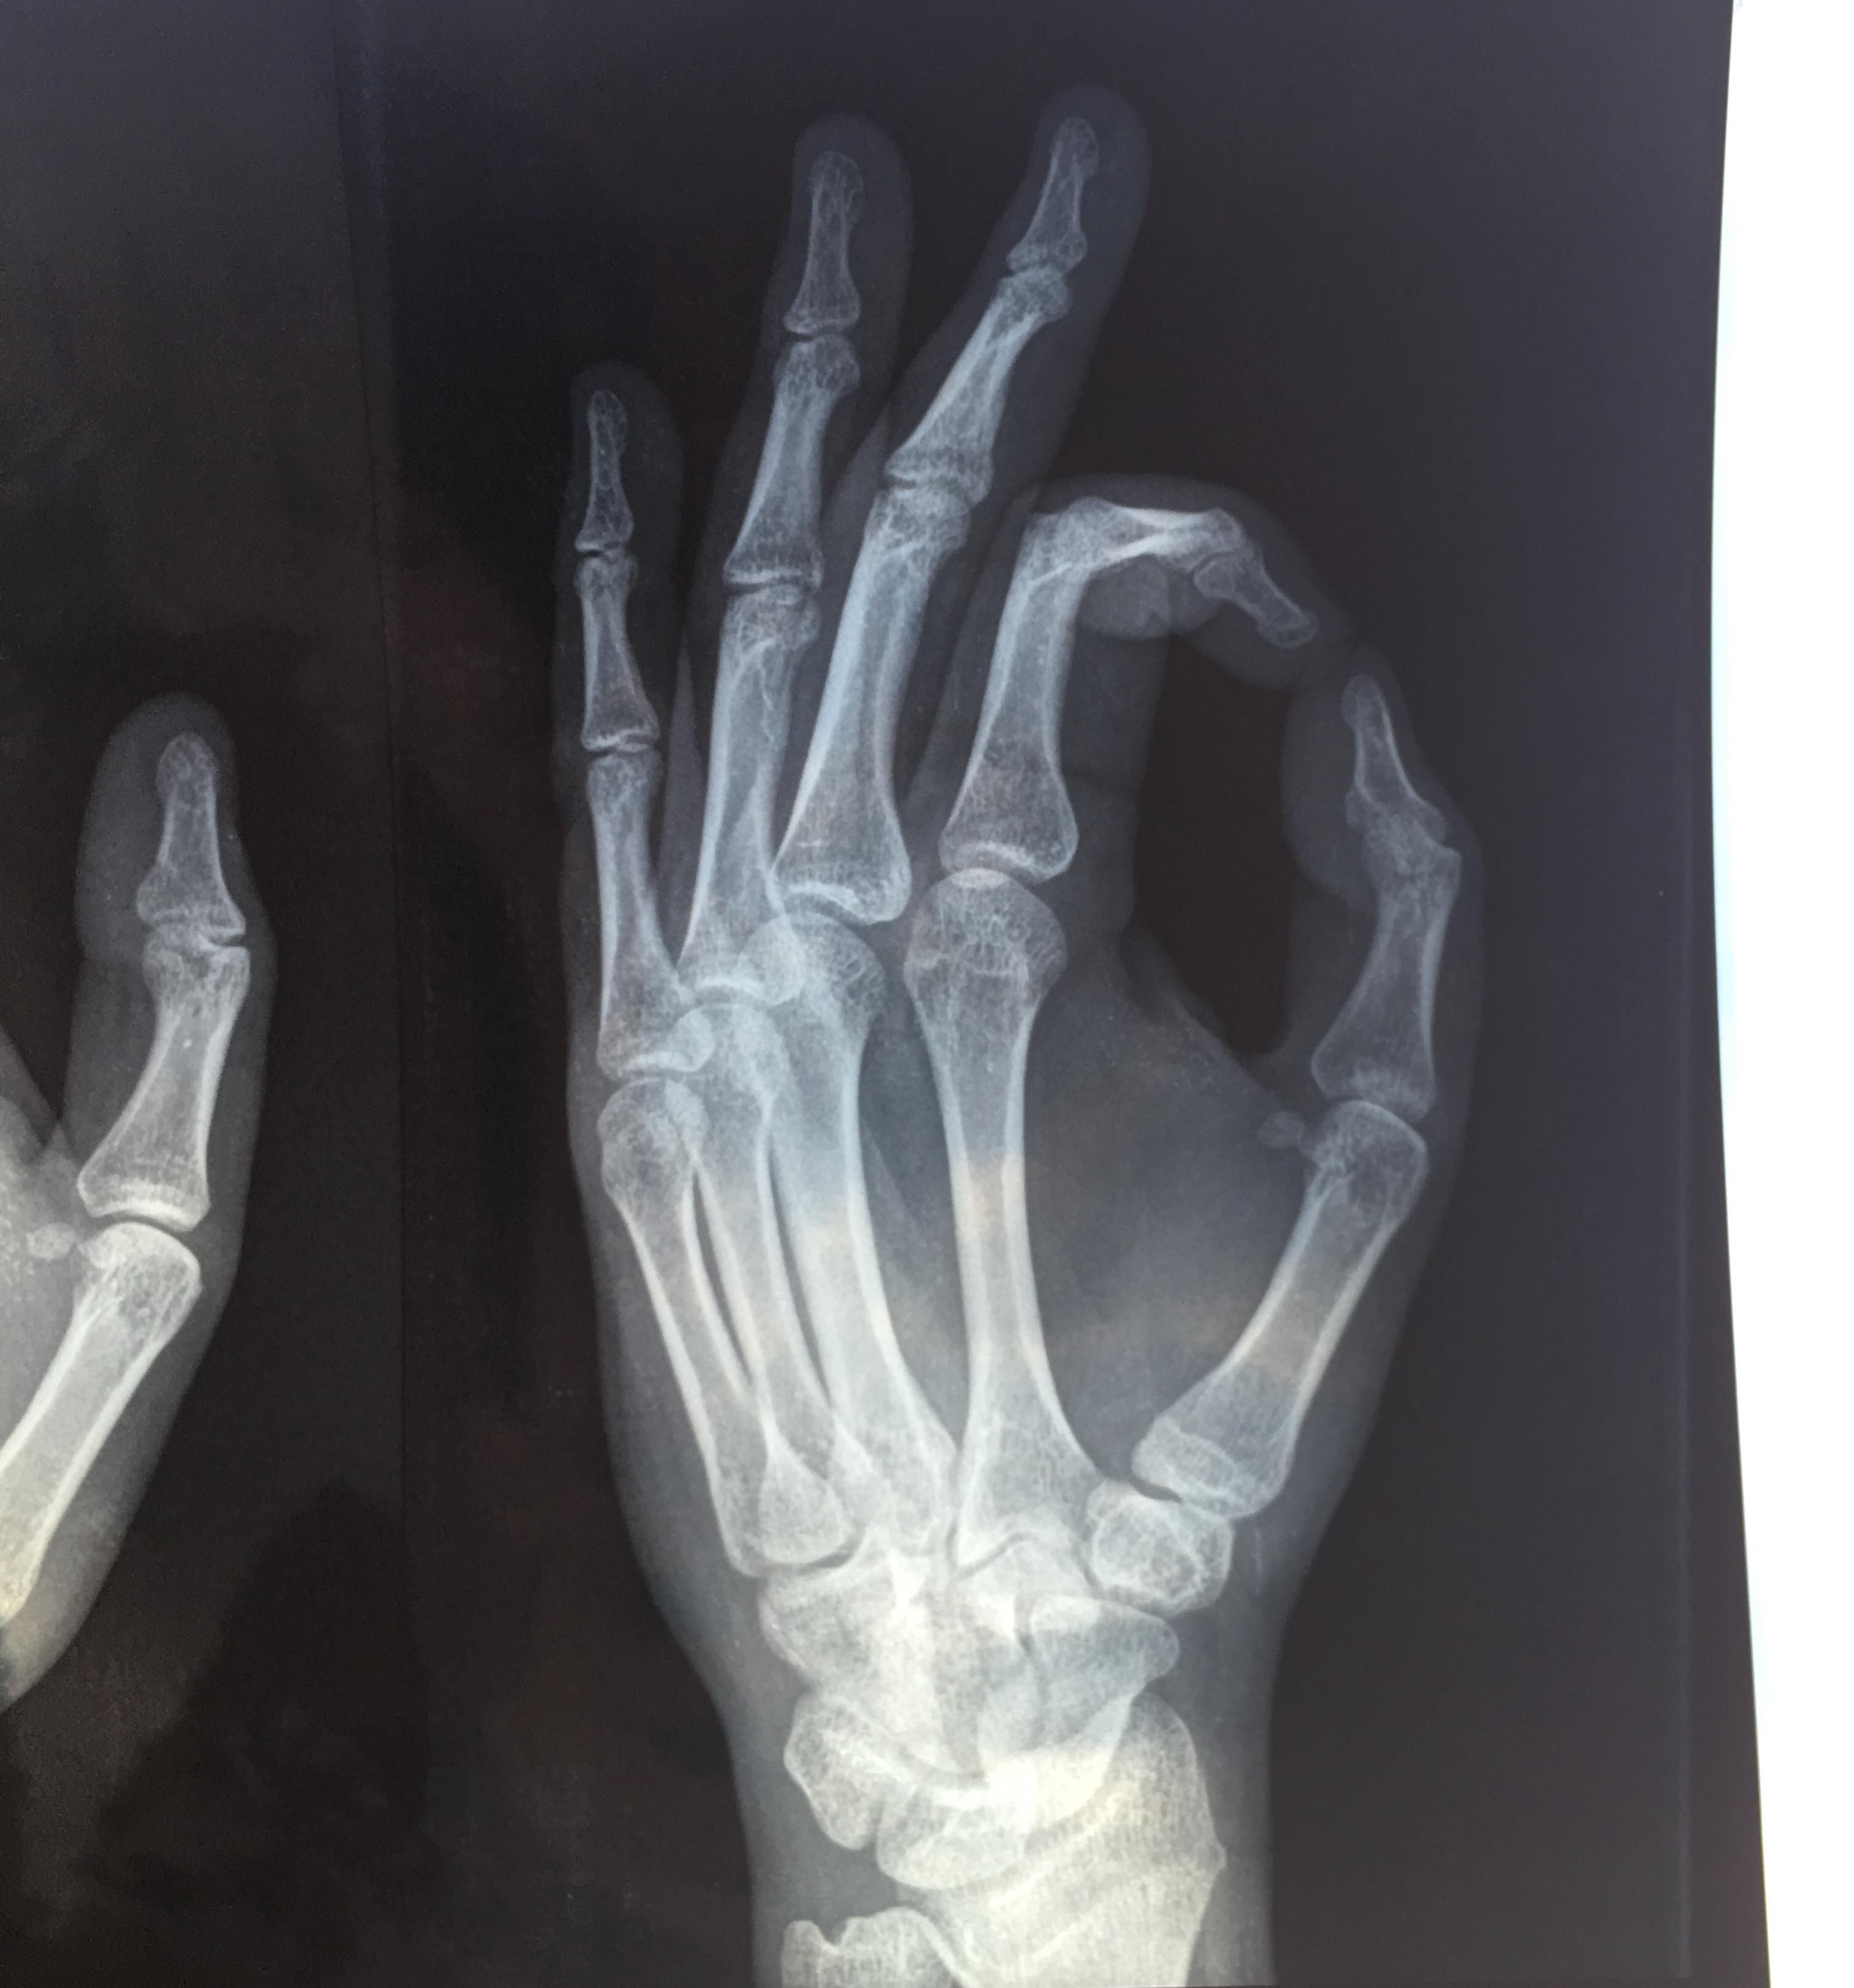 My friend fractured his thumb, then sent me this... he got me good